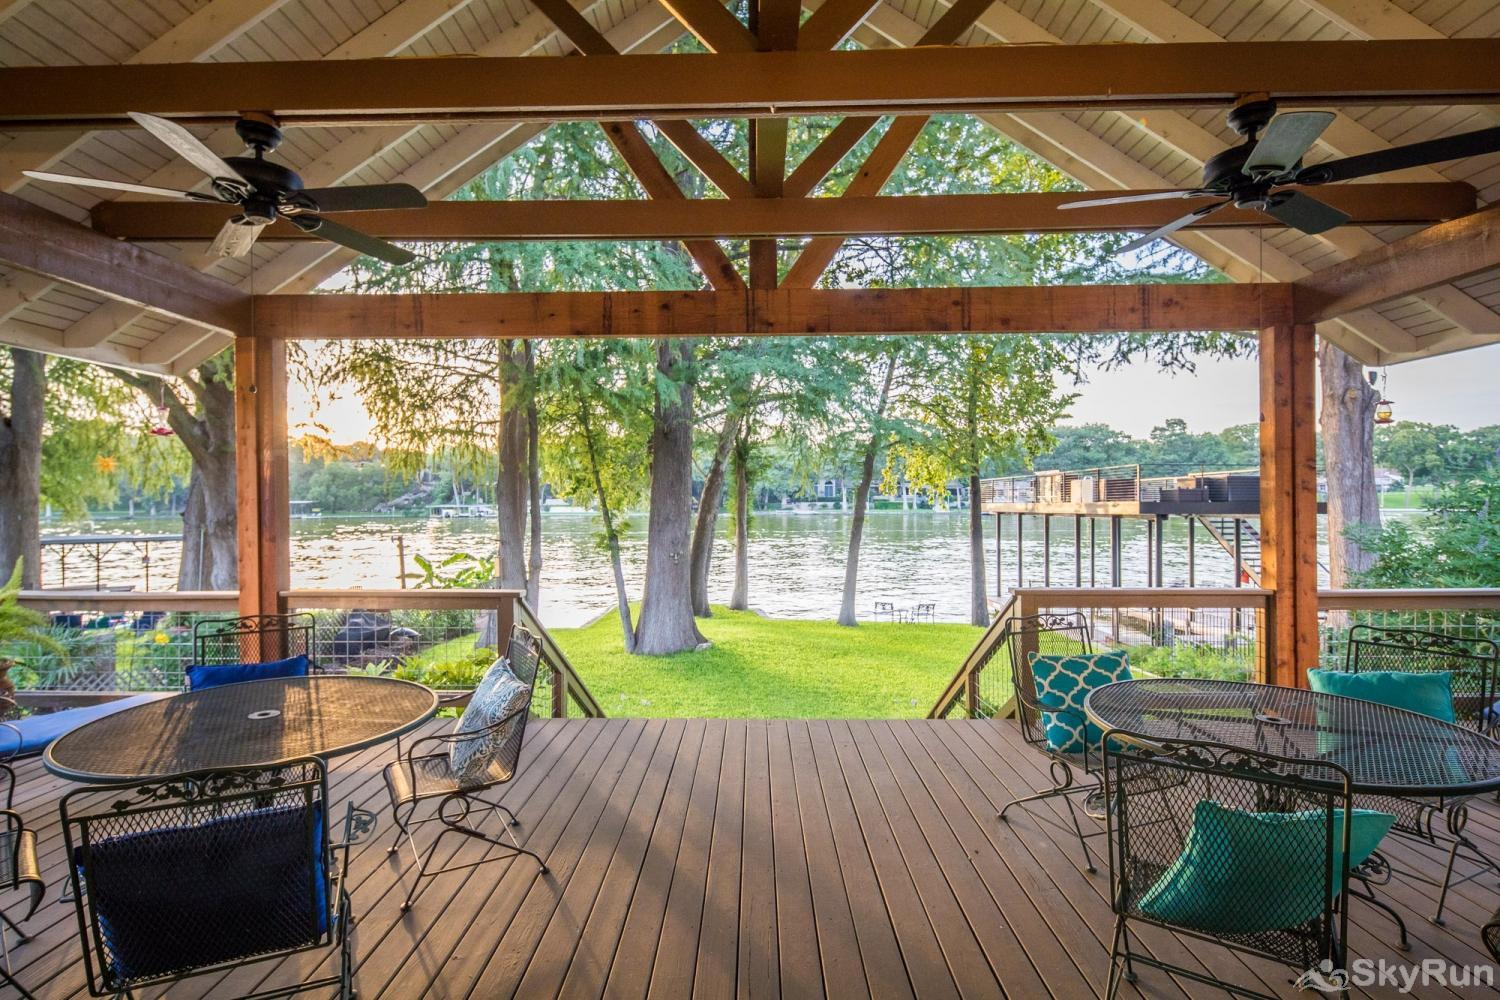 SERENITY SHORES Stunning Lake View and Ample Seating on Deck